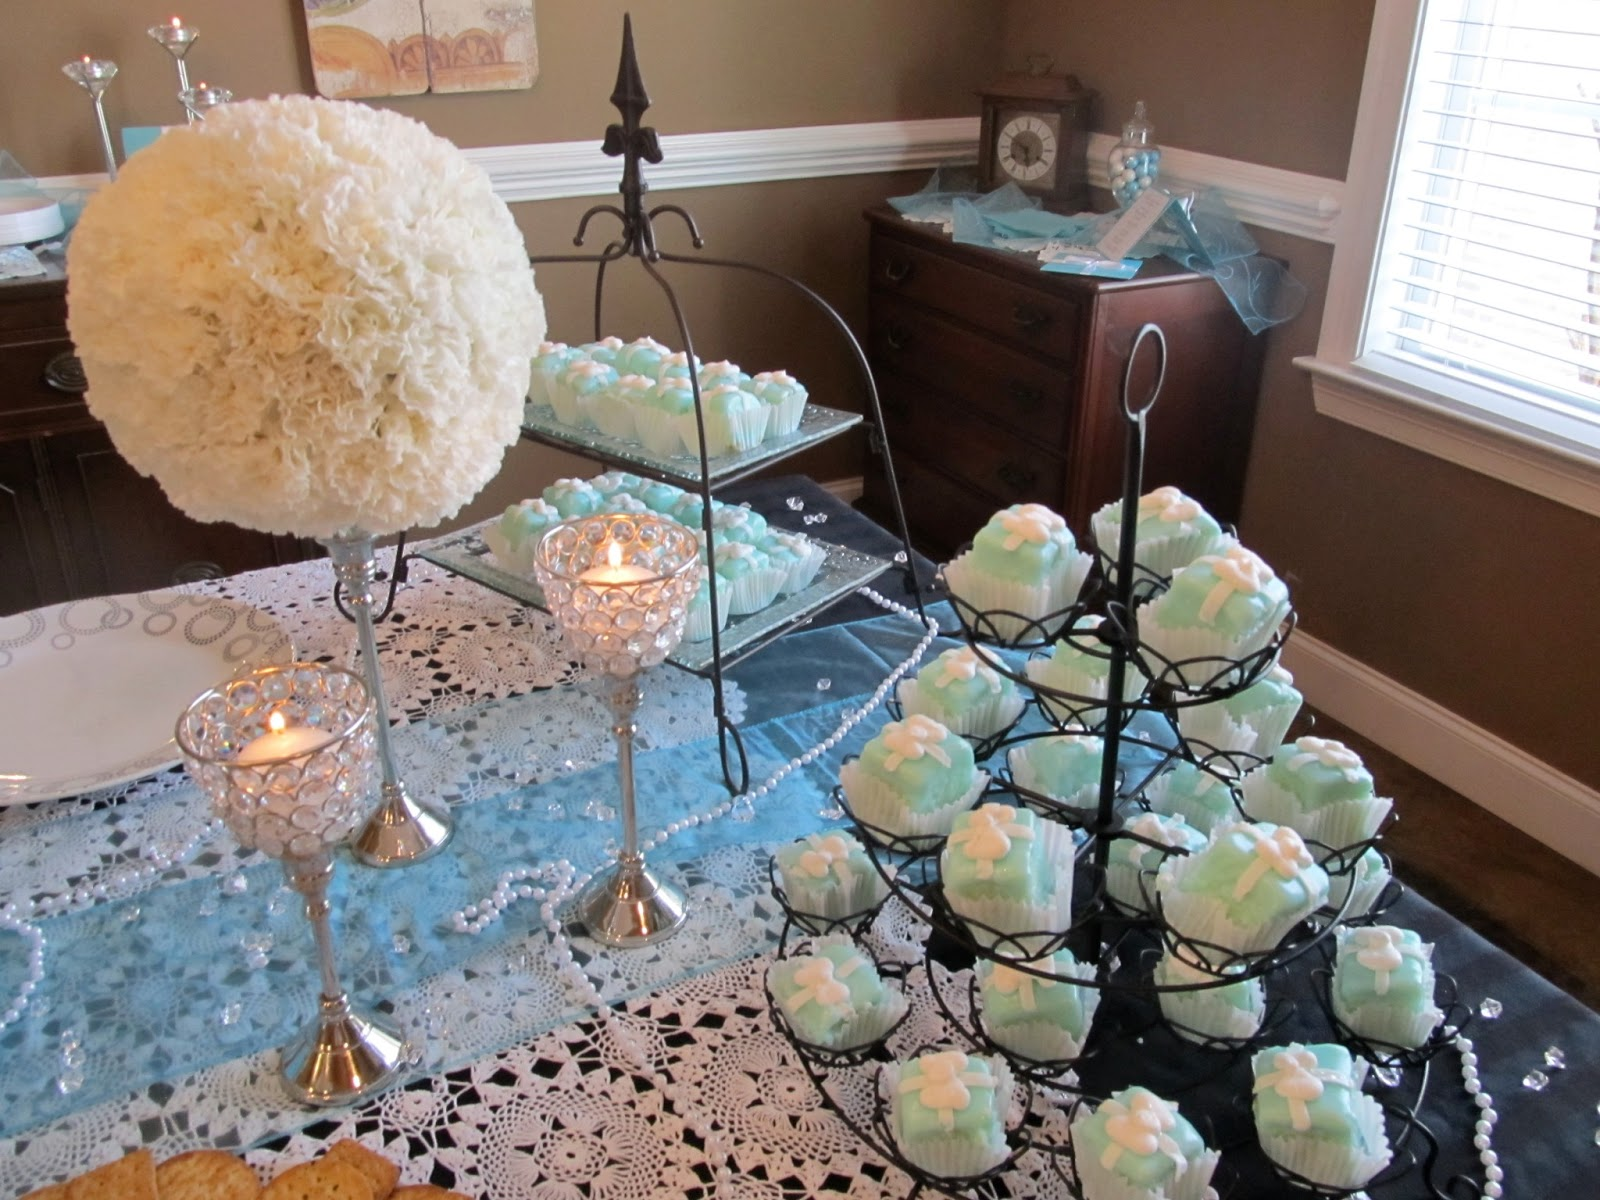 860c02e4ed The lovely ladies at Rick's Bakery were able to customize the glaze to  match the Tiffany blue color and added sweet little buttercream bows to the  ...